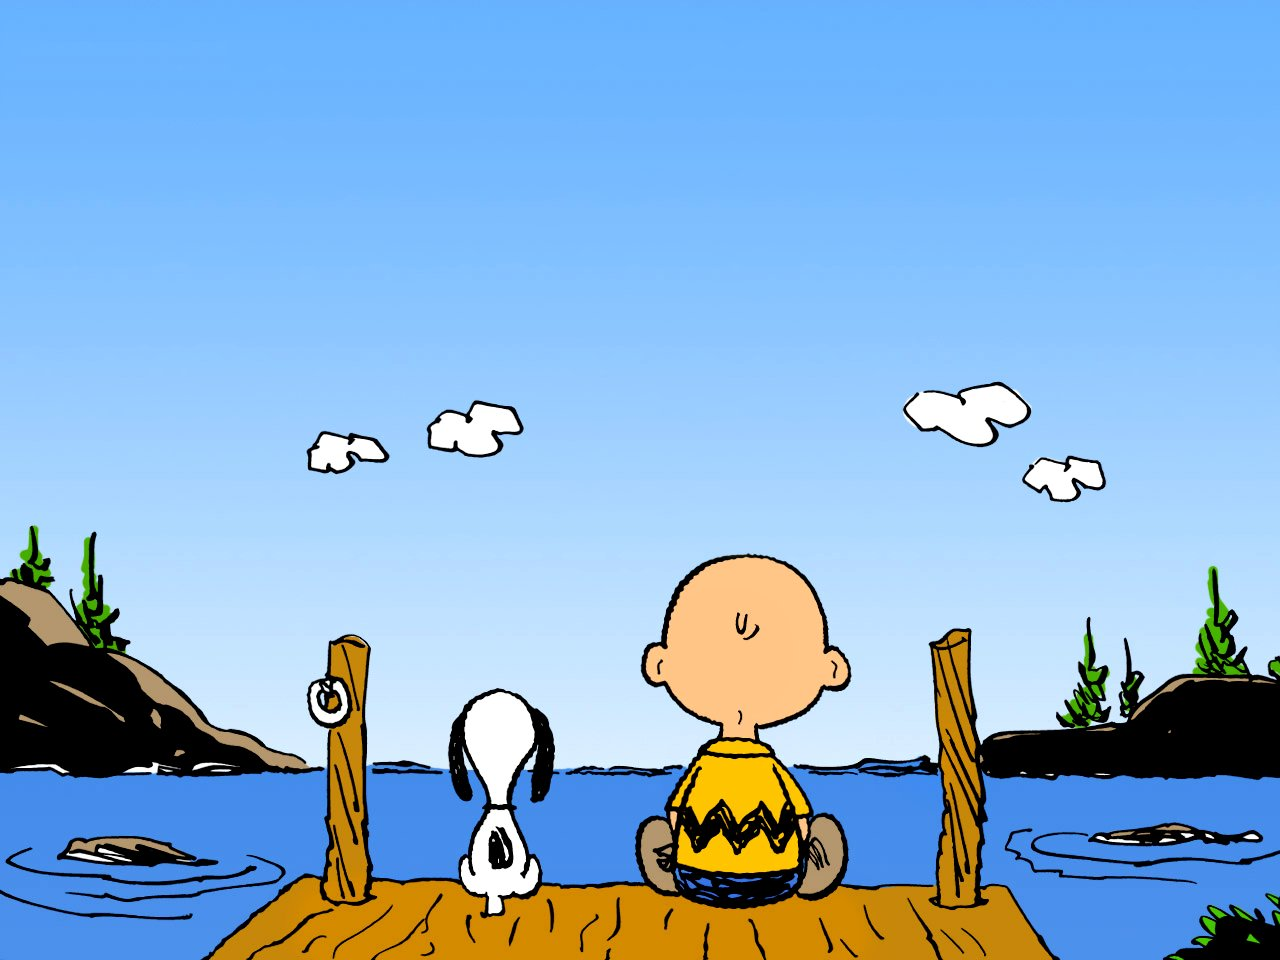 Free Download Snoopy Charlie Wallpaper 1280x960 Snoopy